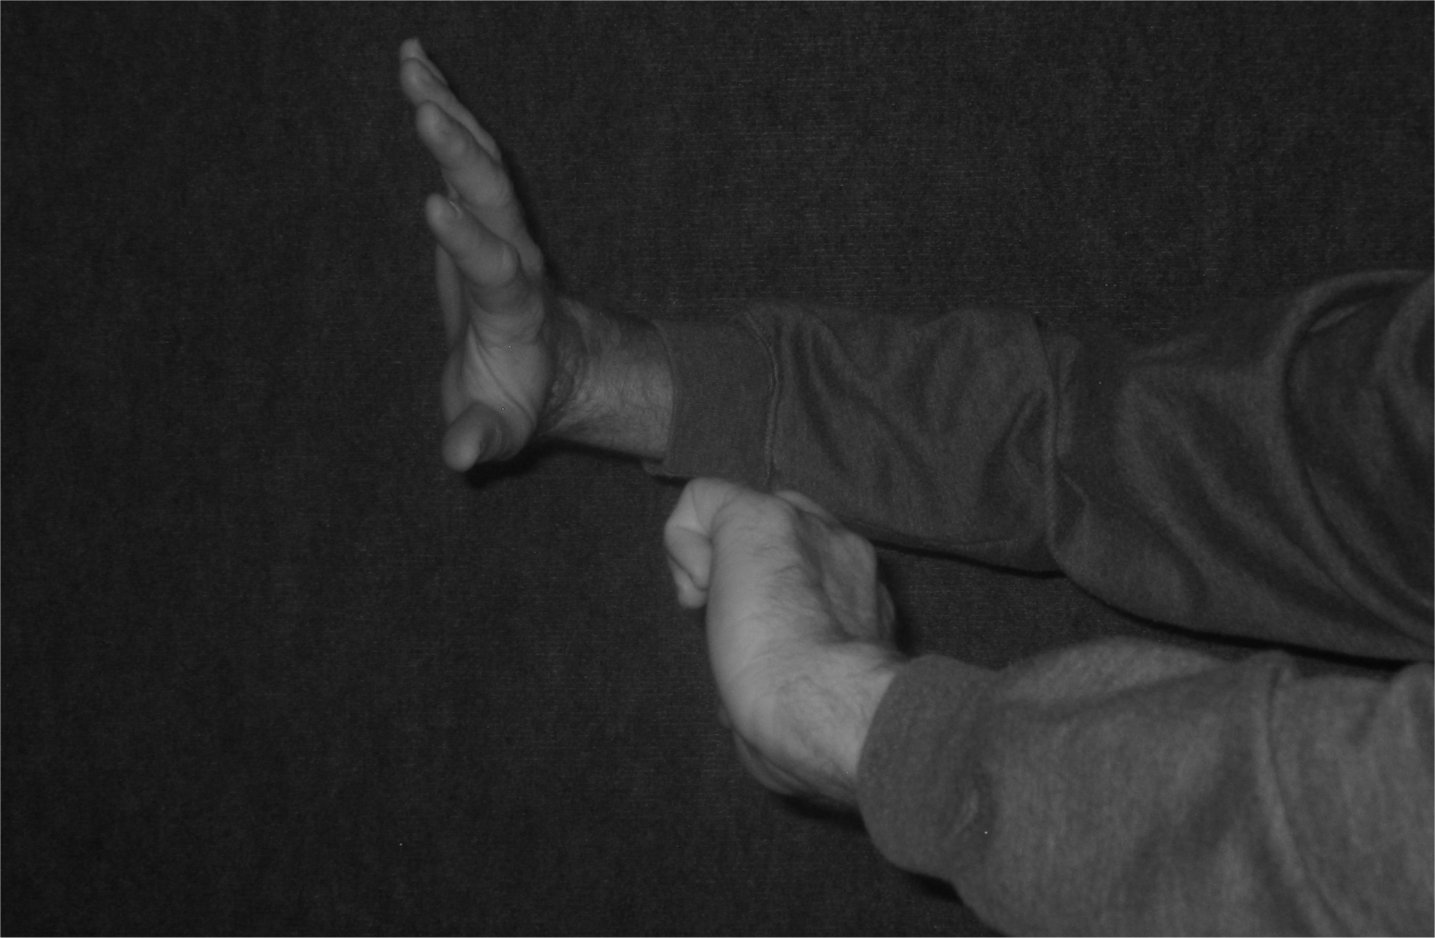 BW - Shoving hands against a grey background - soul-amp.com